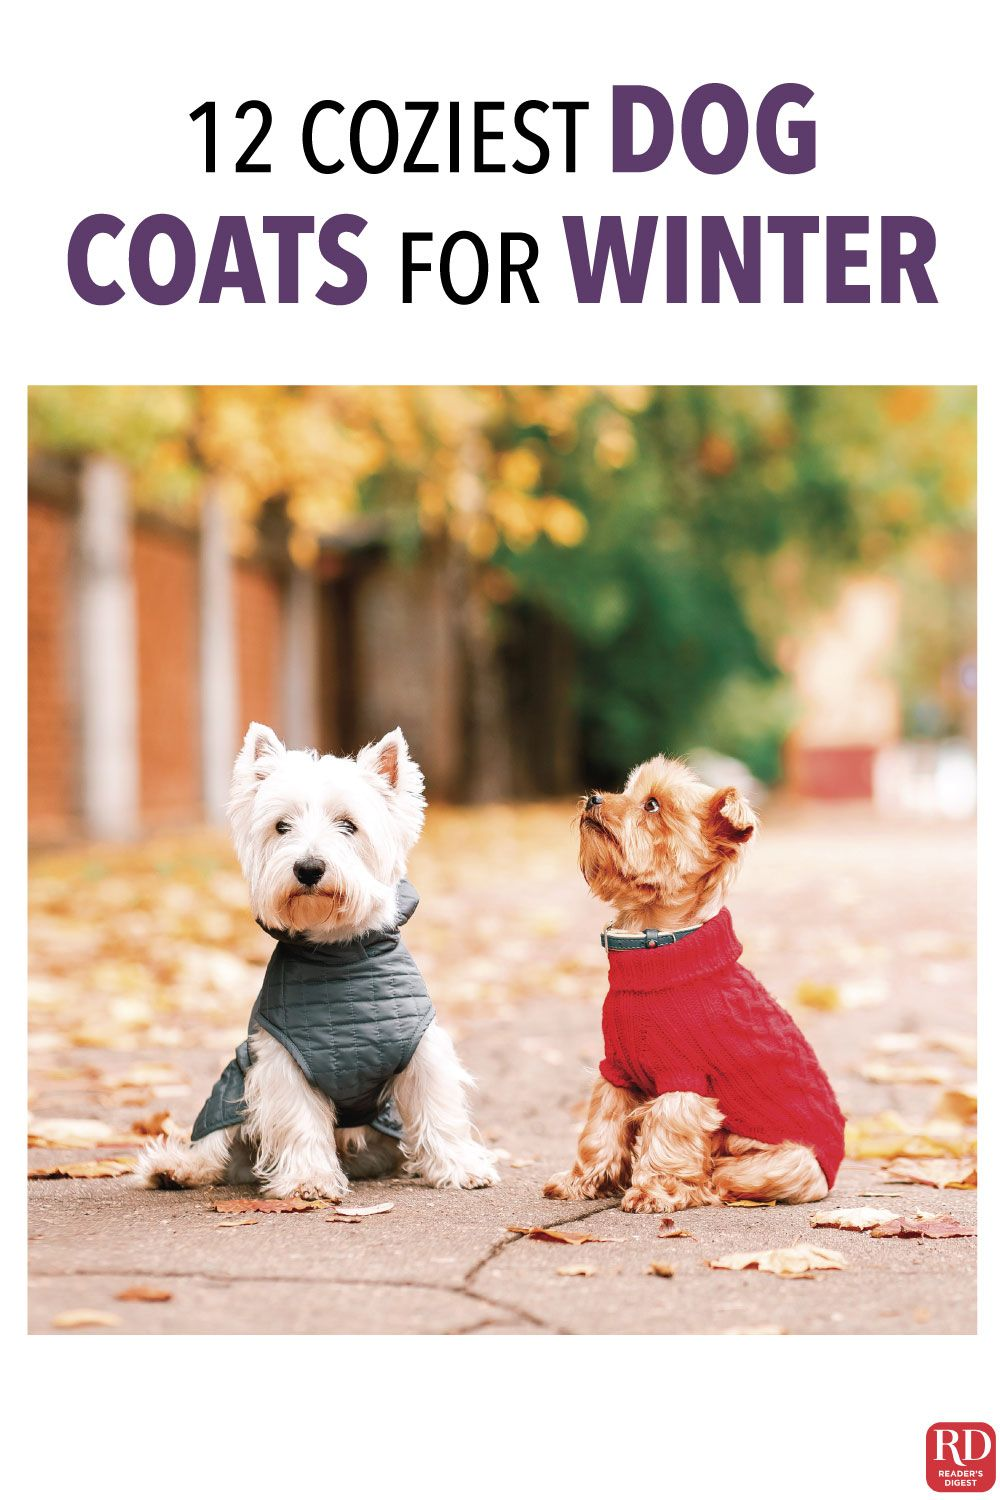 12 Coziest Dog Coats For Winter Your Pup Will Enjoy Having Protection From The Cold Just As Much As You Do On Harsh Winter Dog Winter Coat Cozy Dog Dog Coats